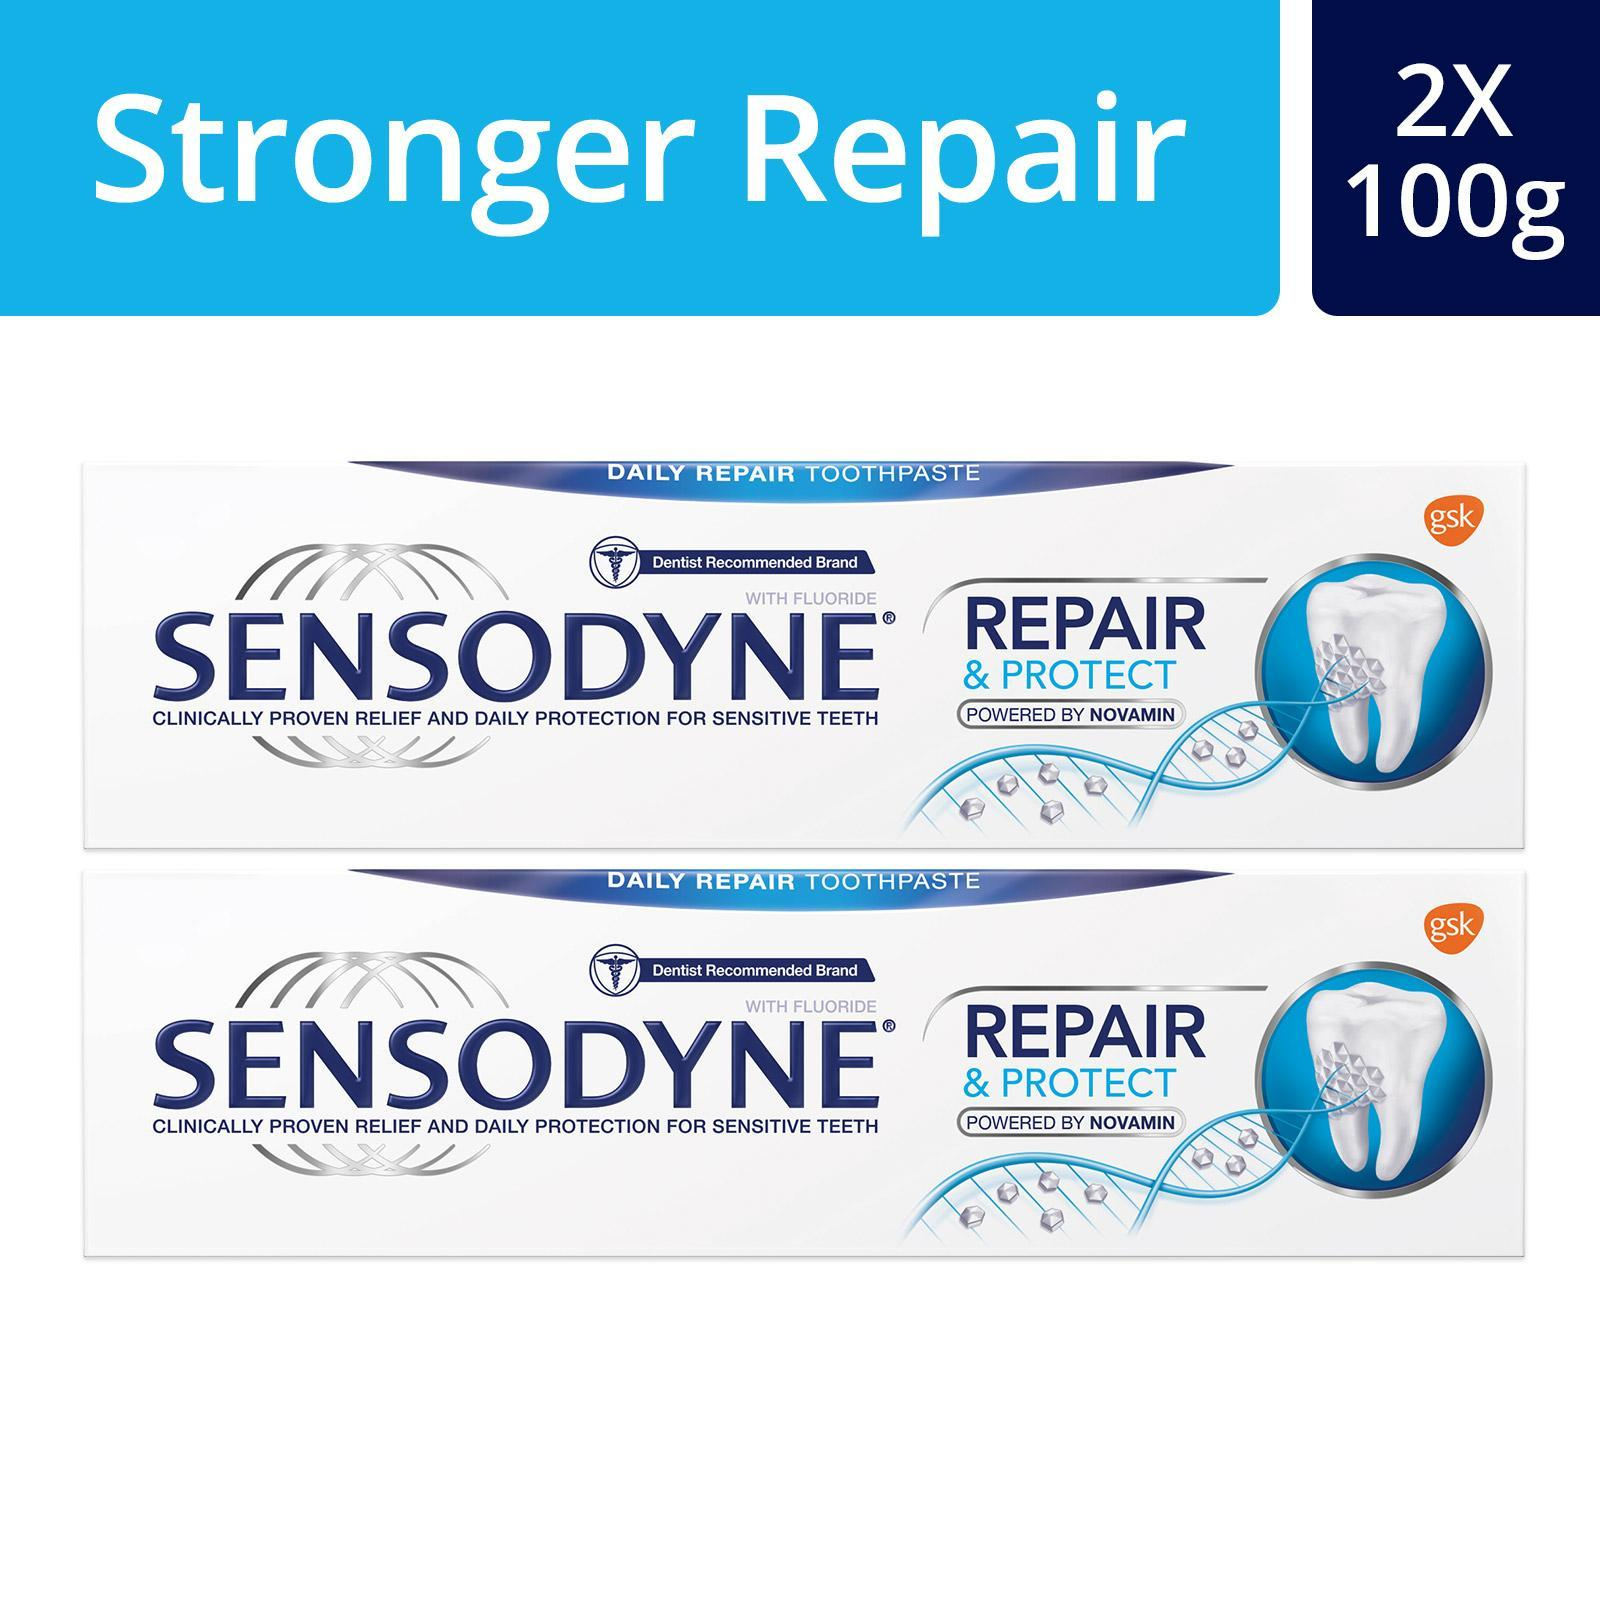 Sensodyne Repair + Protect (bundle Of 2x100g) By Gsk Official Store.